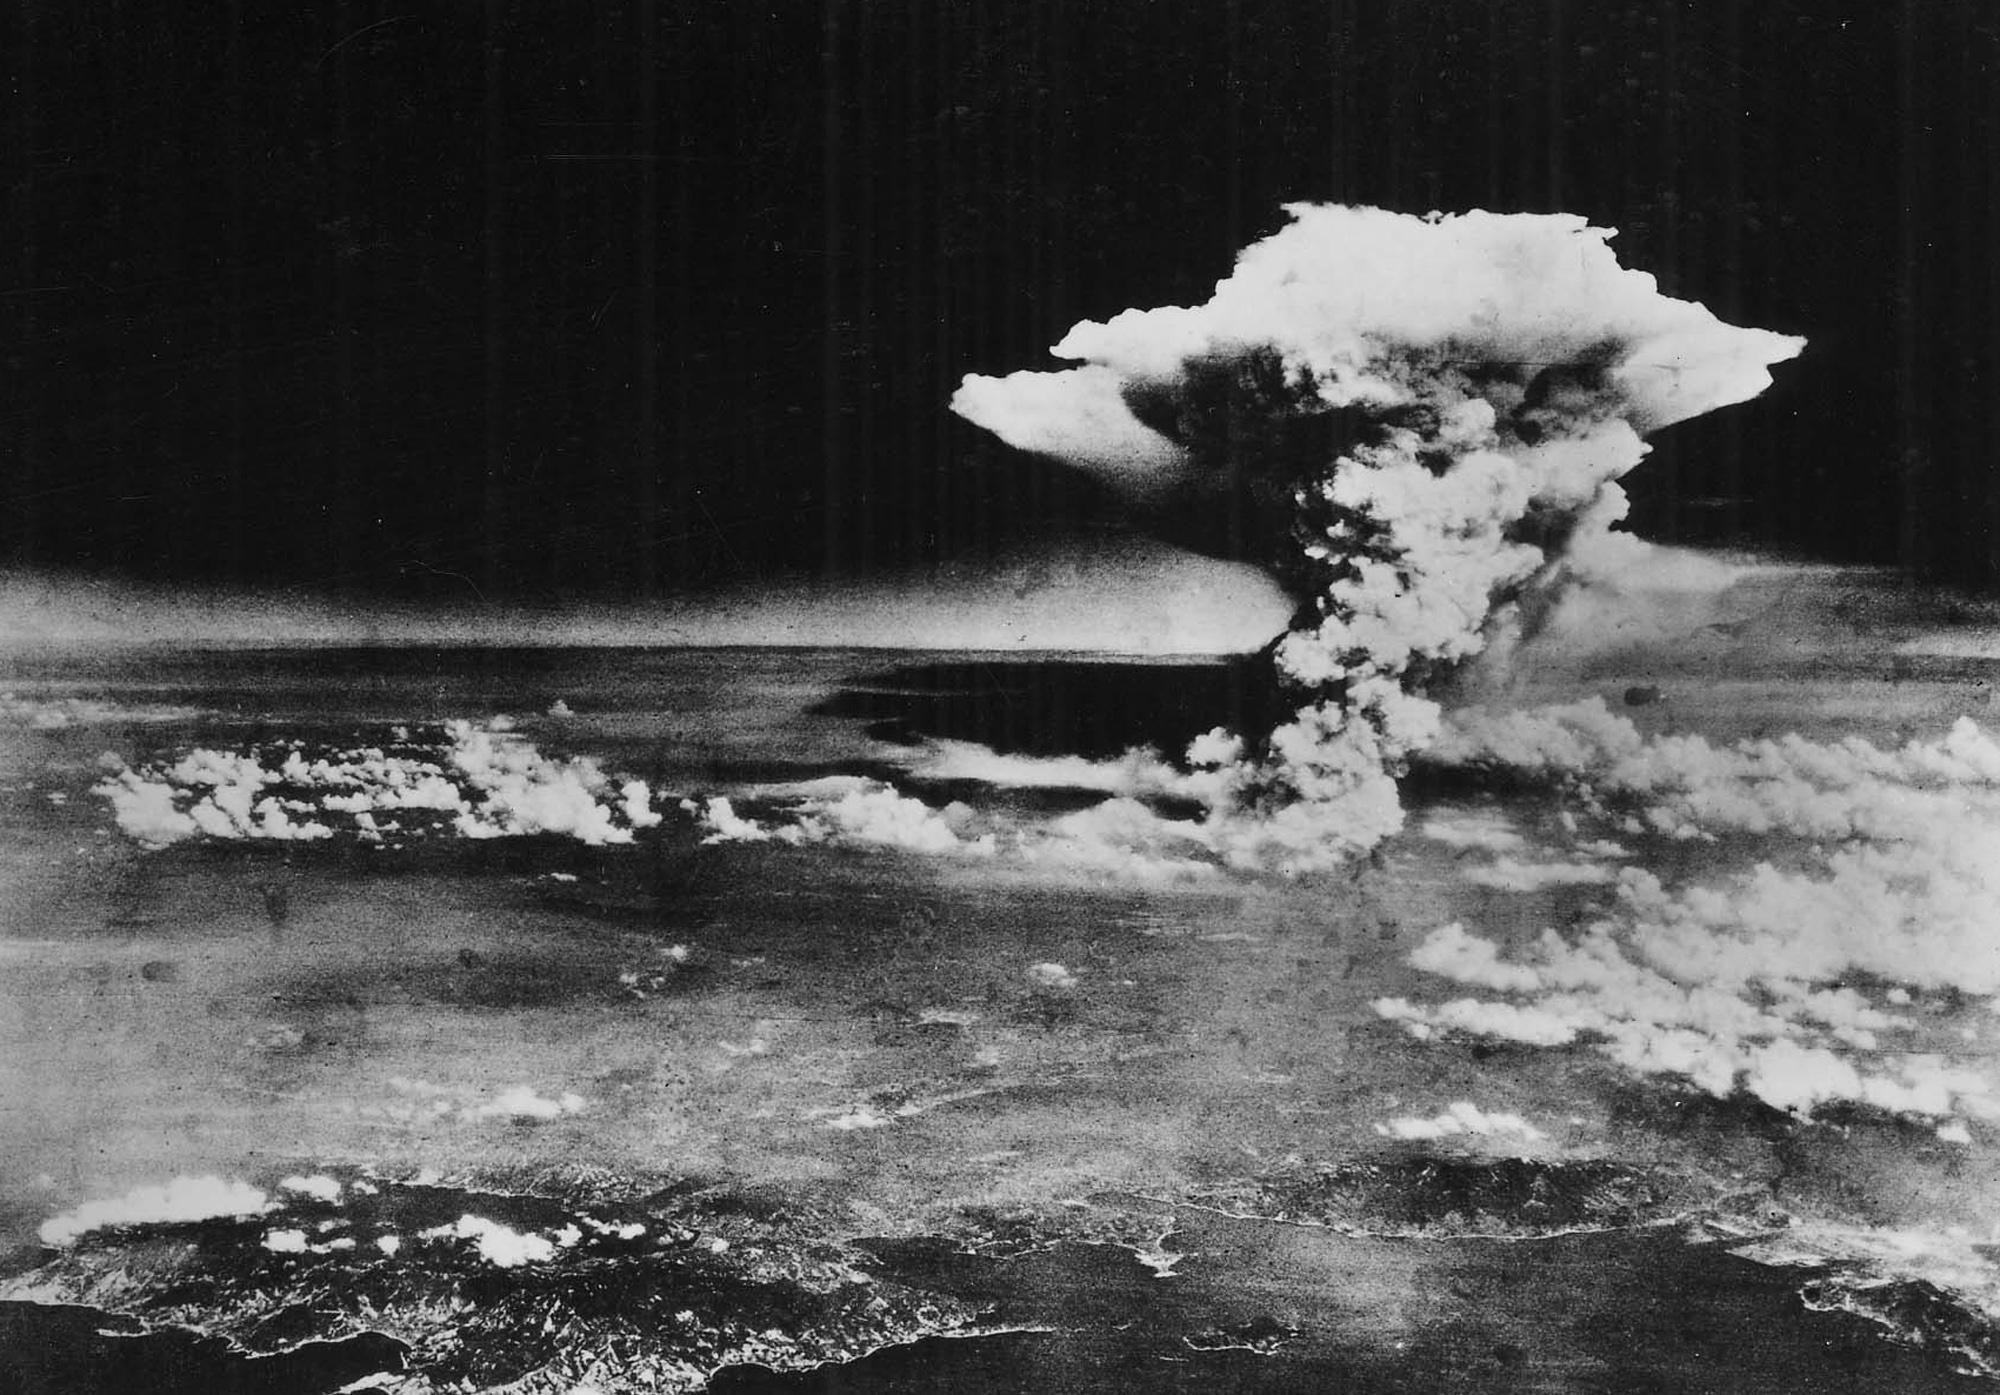 Atomic cloud over Hiroshima, photographed from the air after the United States dropped a nuclear bomb over the city on August 6, 1945.